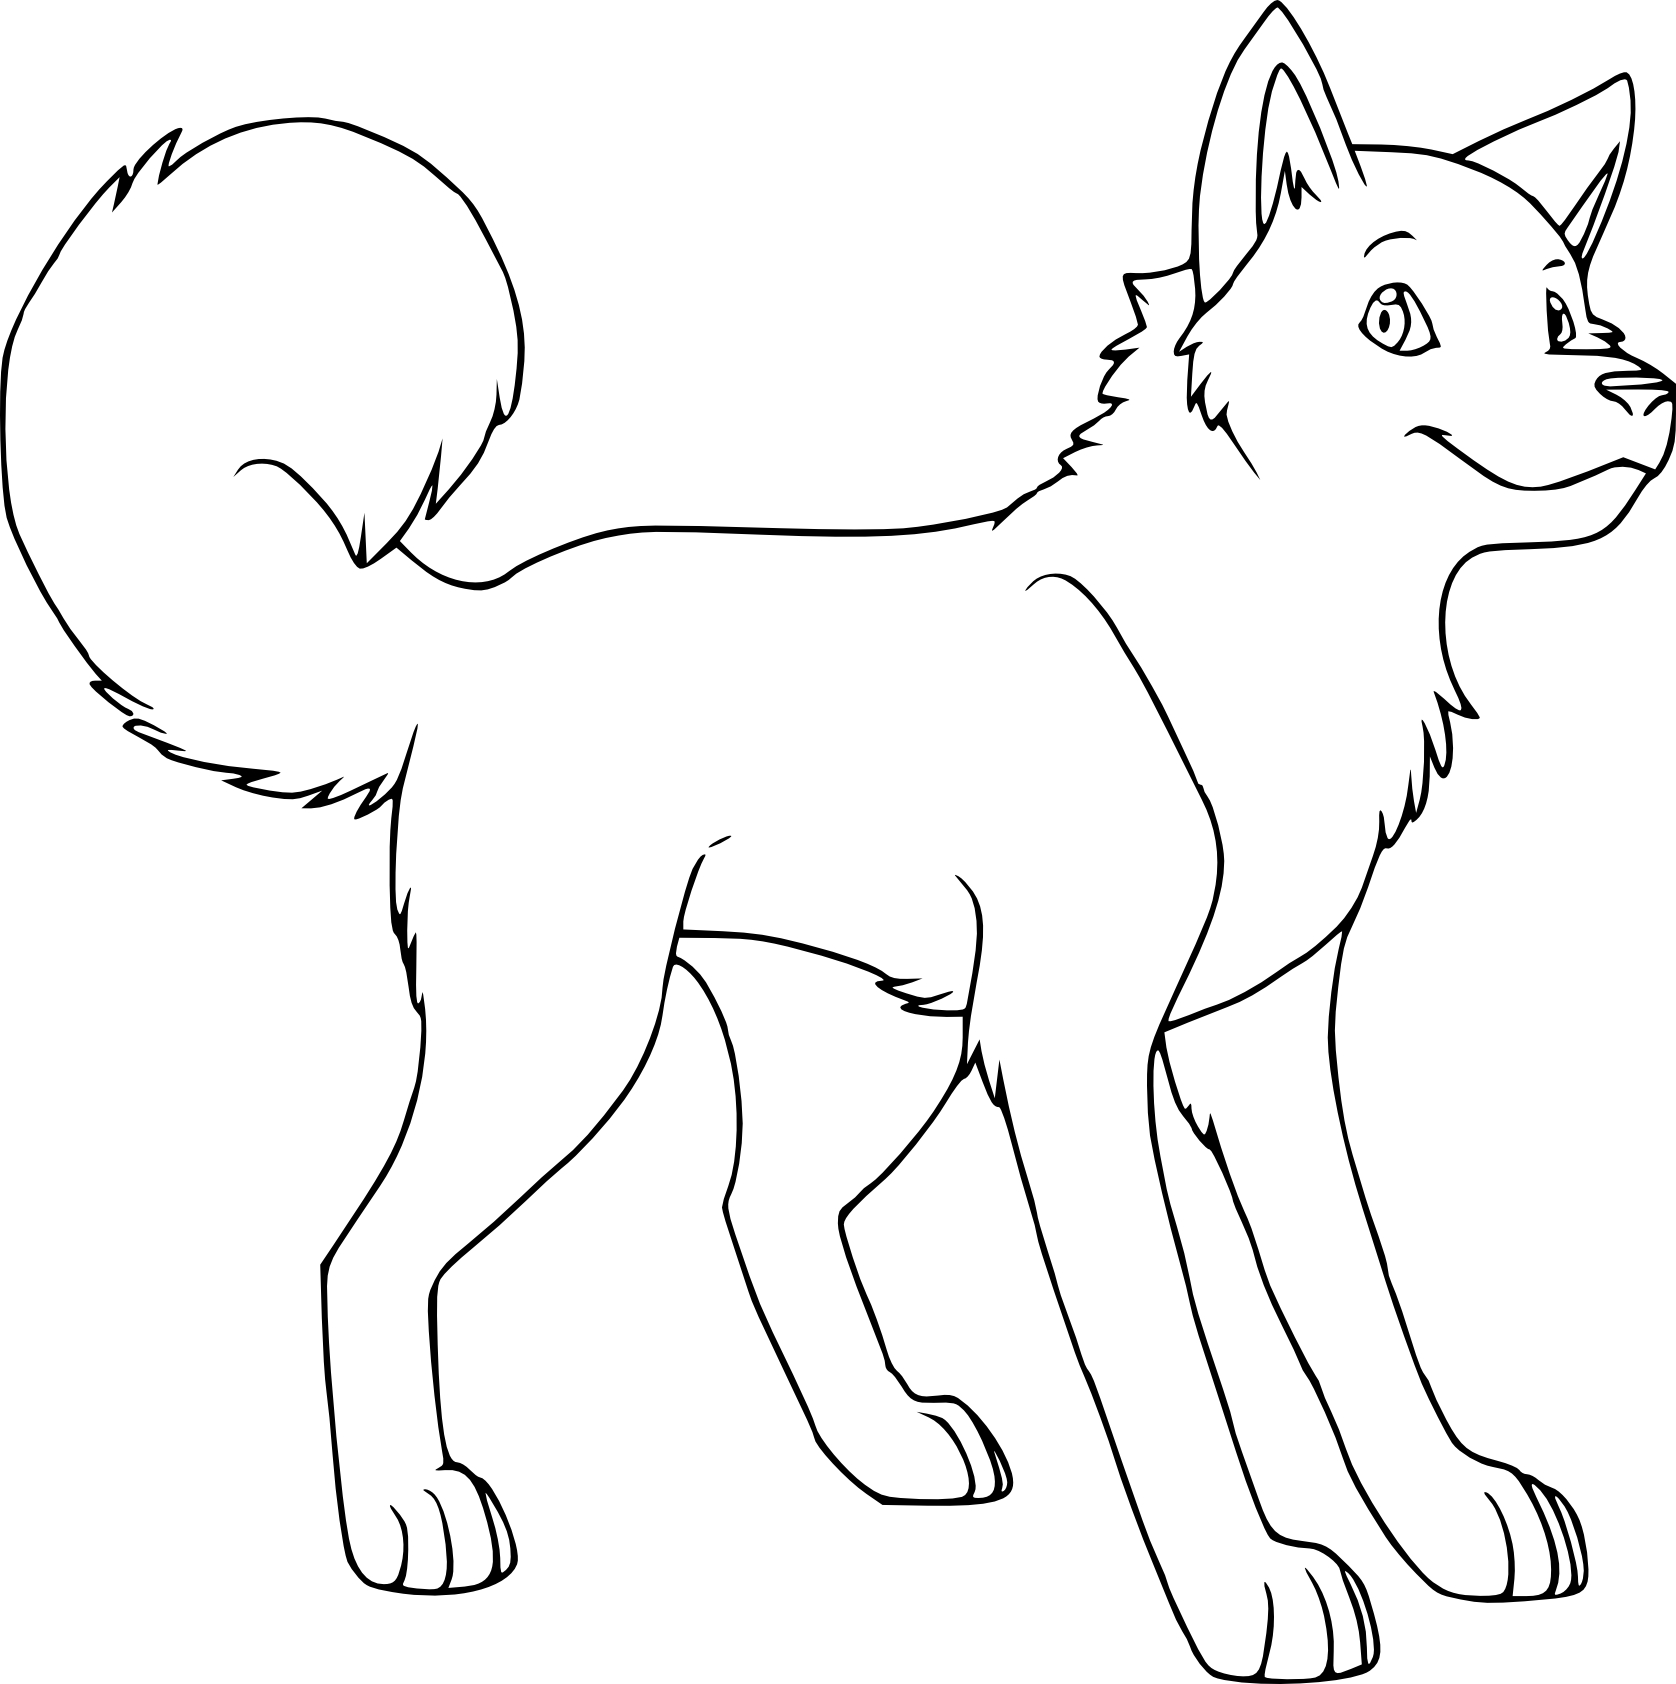 Holiday Coloring Pages » Husky Coloring Pages - Free Printable ...